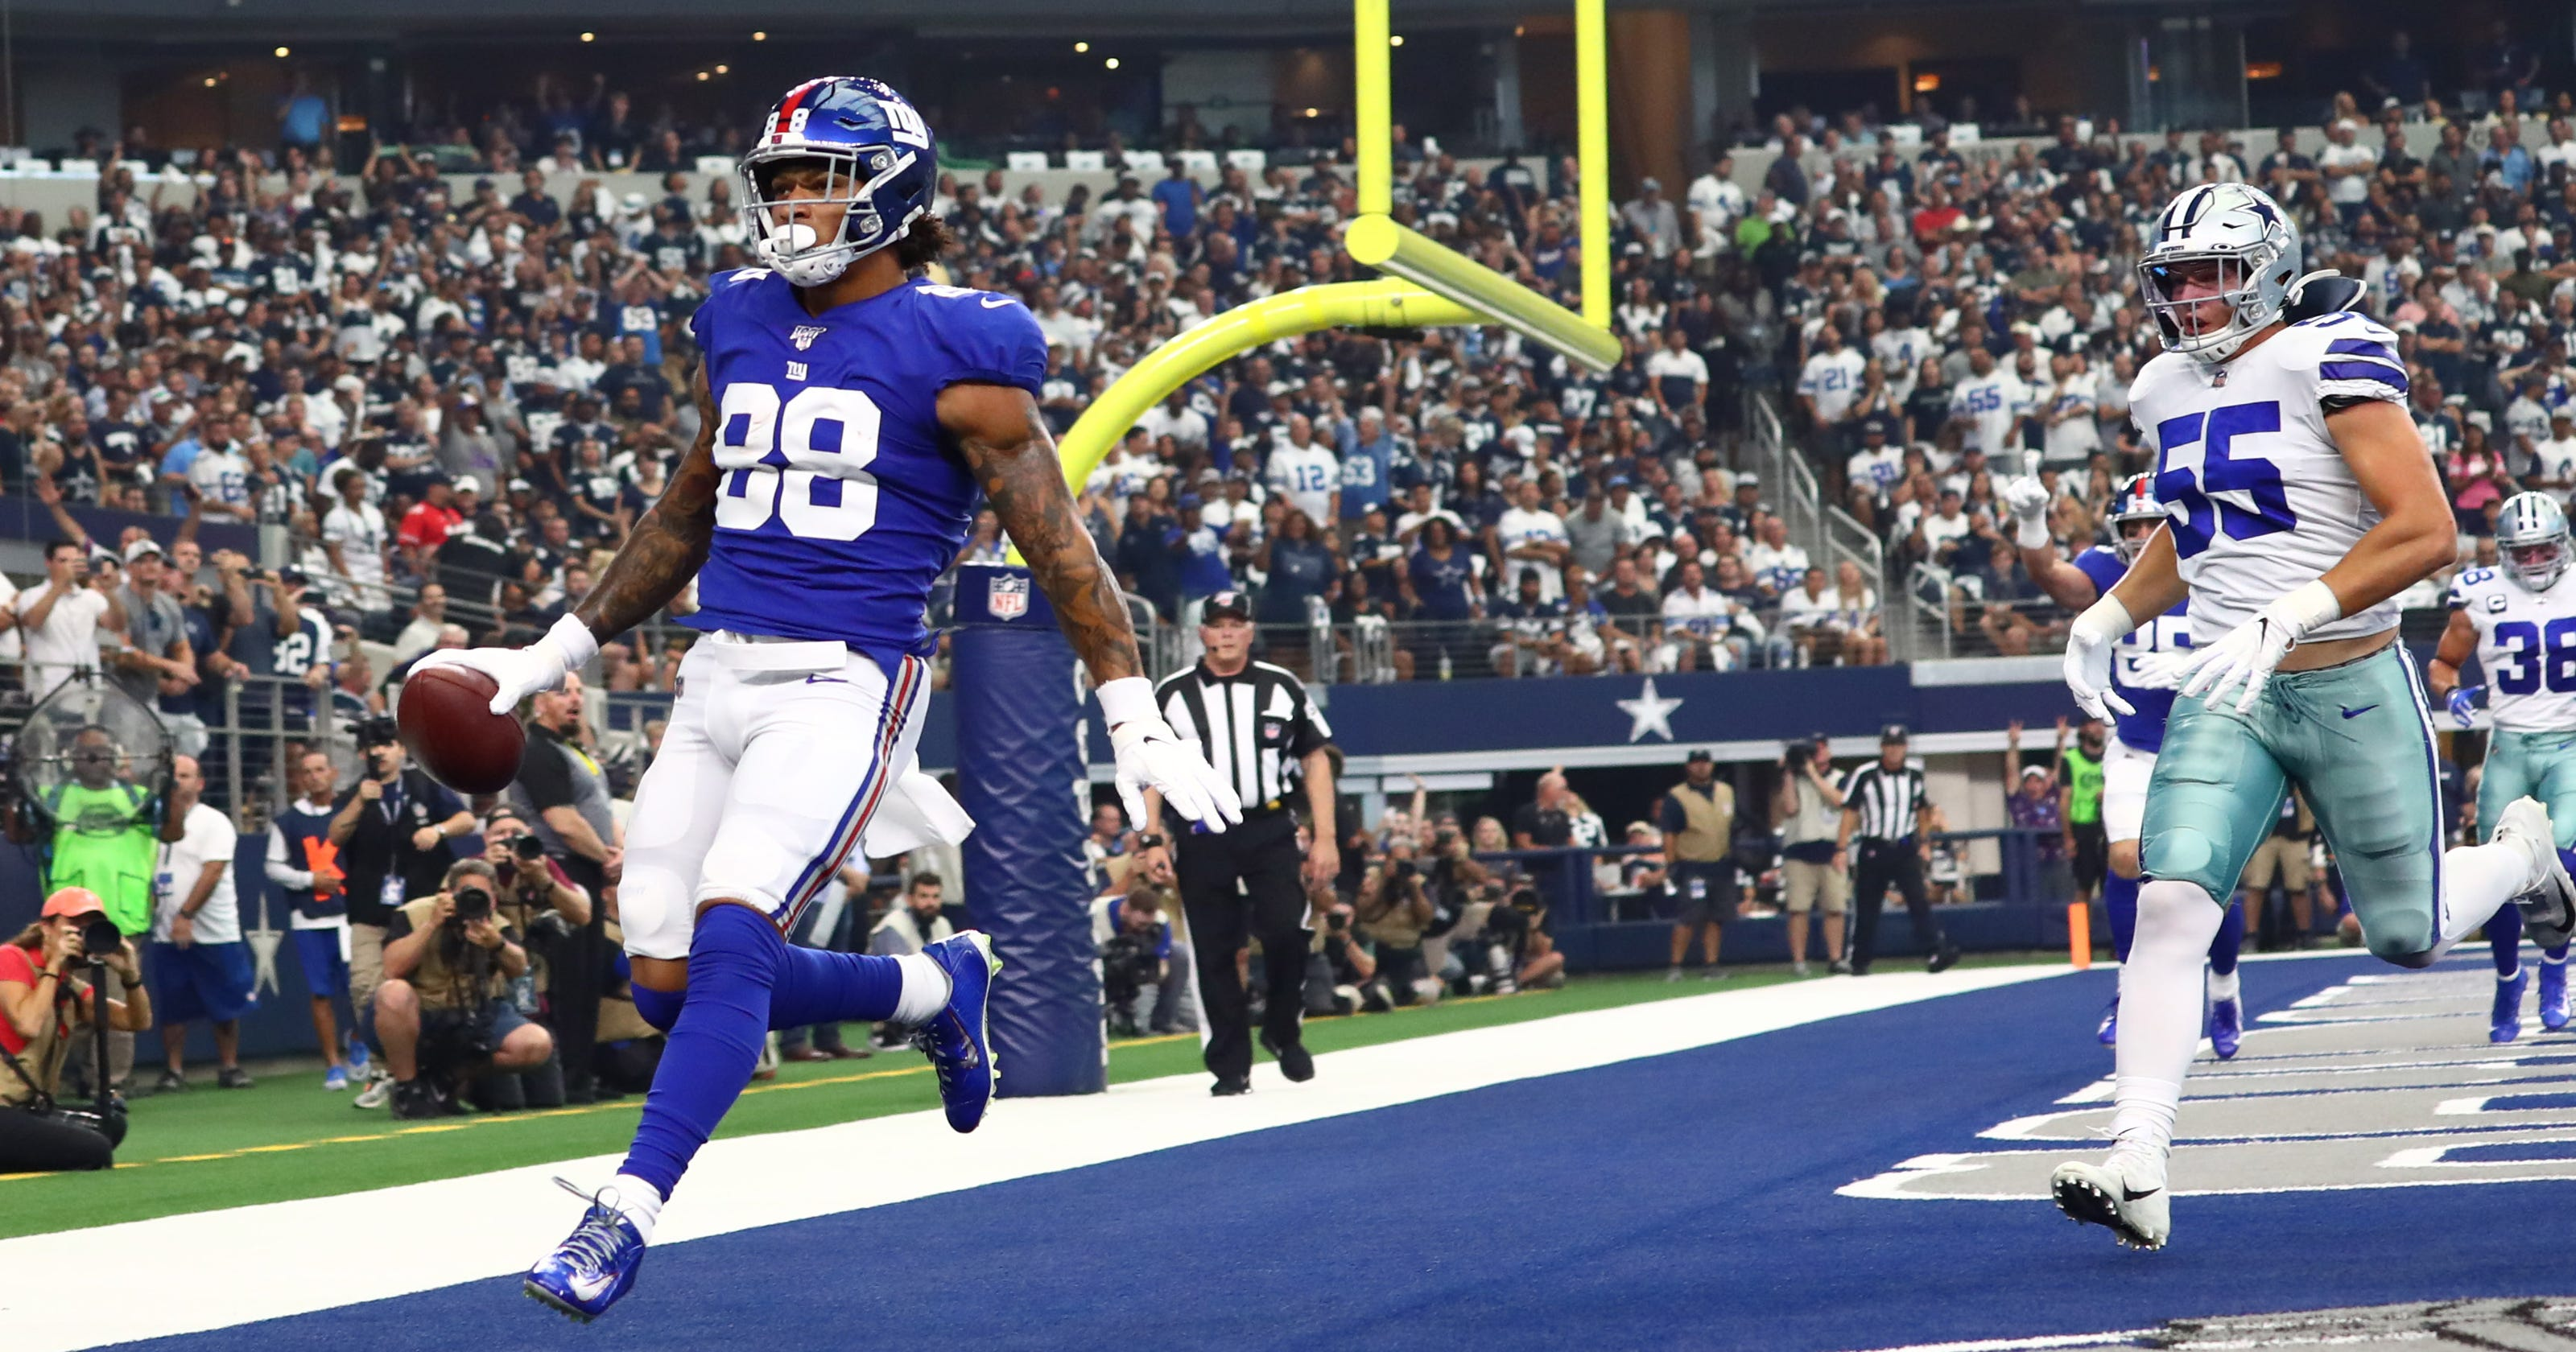 innovative design 14c6e ff57a Evan Engram: 'Working in silence' as blocker, making noise ...